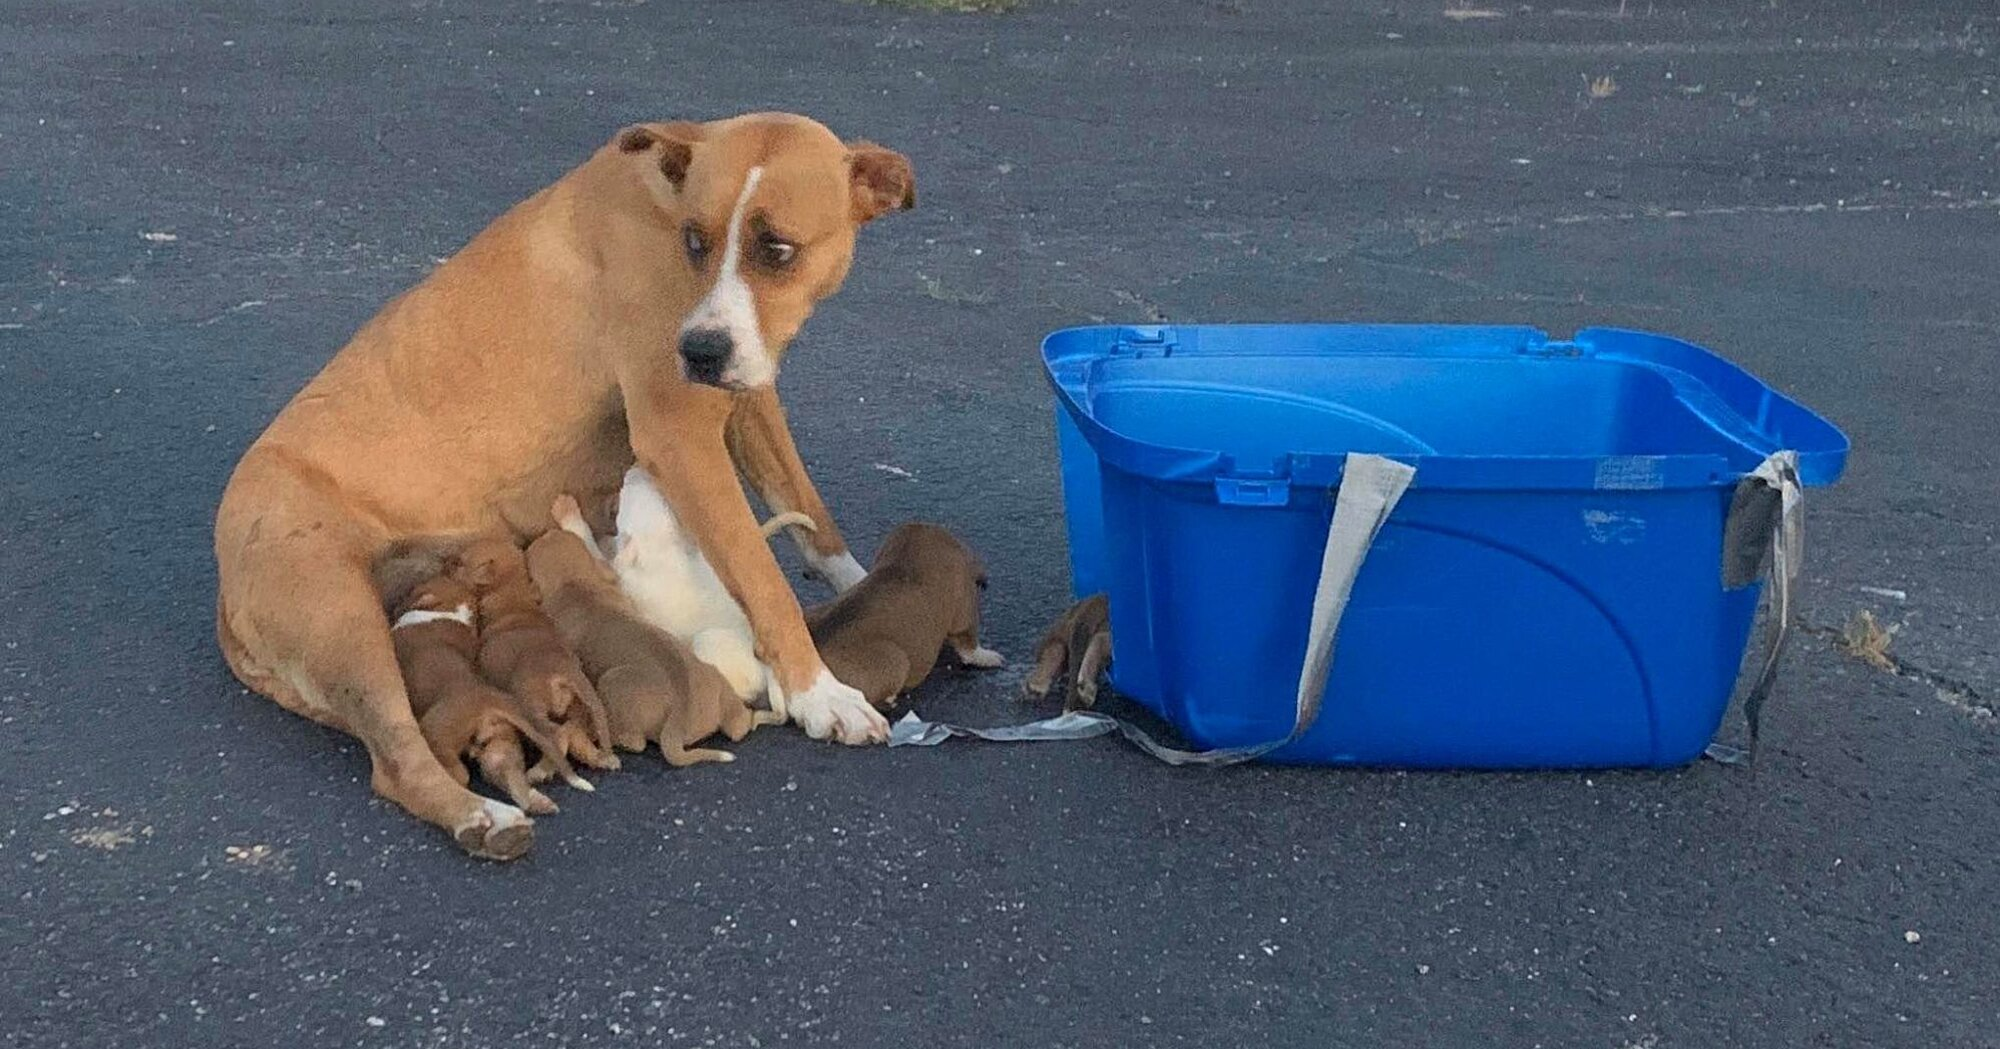 Texas Rescue Group Saves Dog and Her 9 Puppies After They Were Dumped in a Church Parking Lot